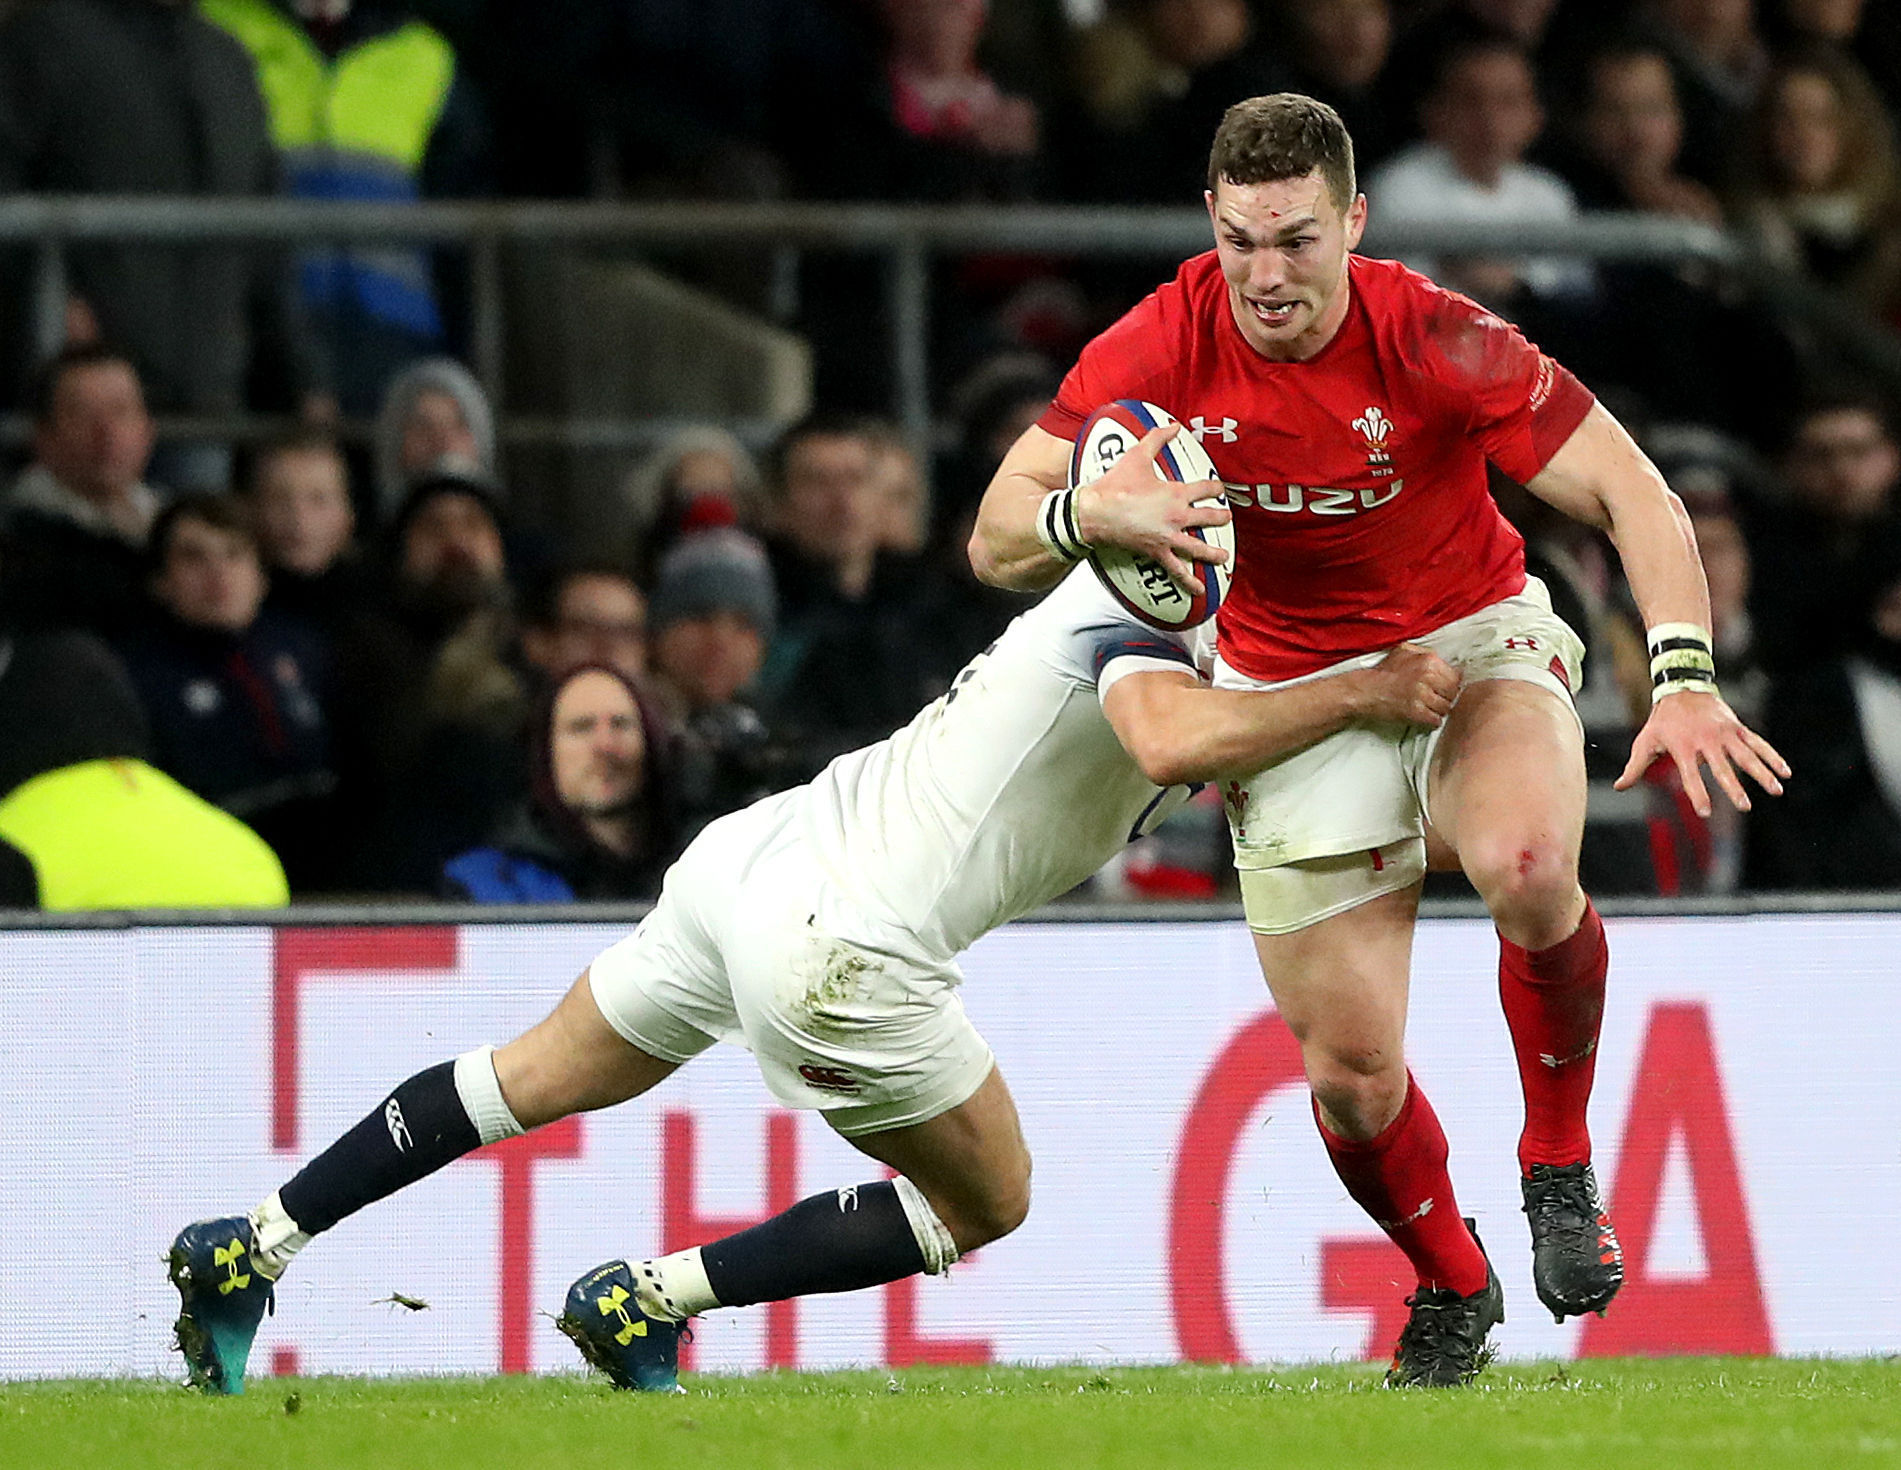 Wales' George North in action during the NatWest 6 Nations match at Twickenham Stadium, London. PRESS ASSOCIATION Photo. Picture date: Saturday February 10, 2018. See PA story RUGBYU England. Photo credit should read: Adam Davy/PA Wire. RESTRICTIONS: